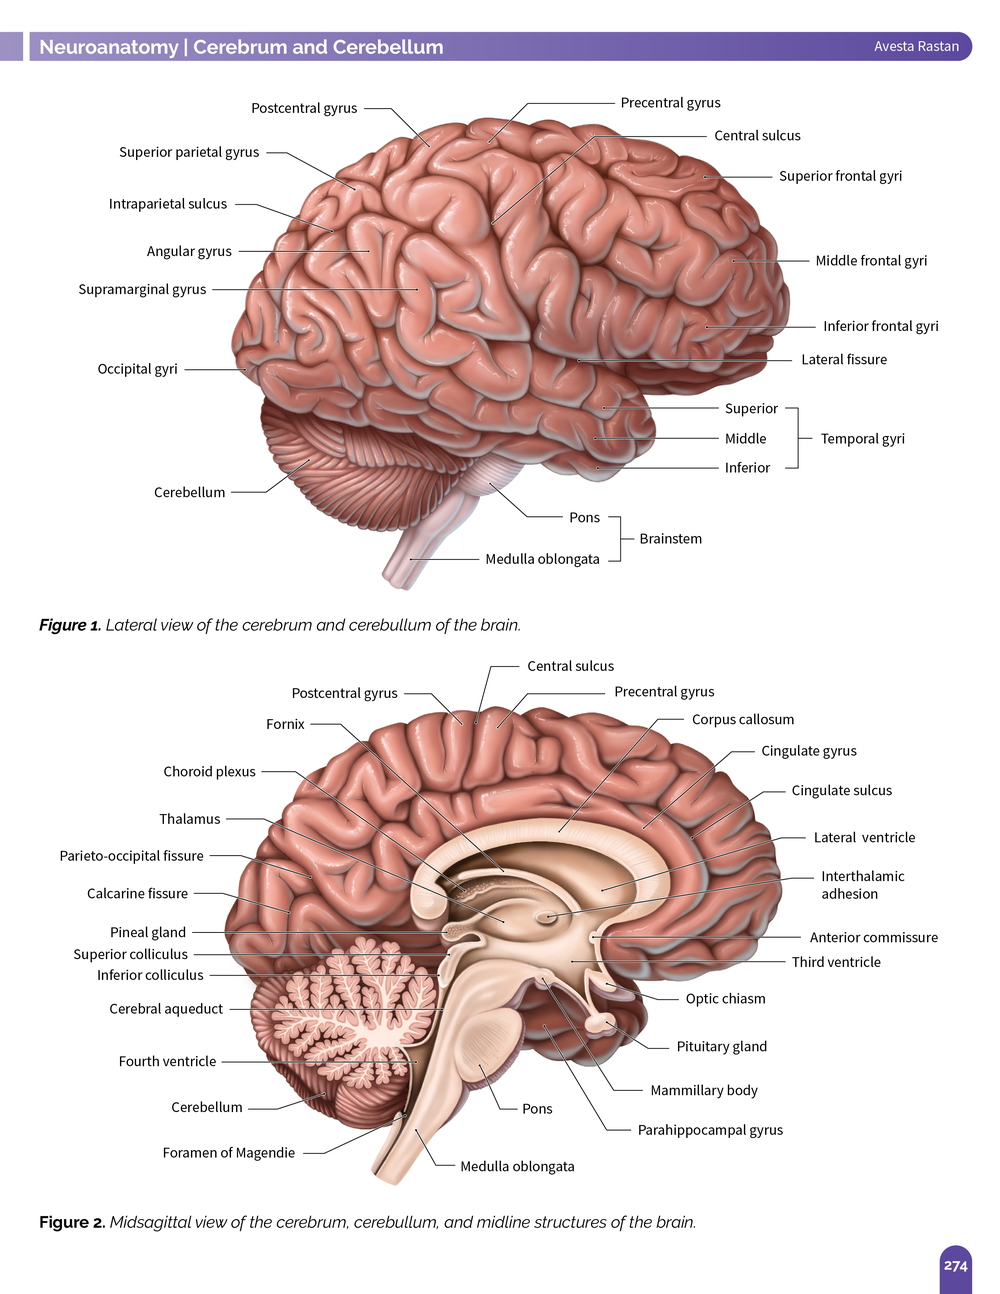 Cerebrum and Cerebellum Edited-01.png